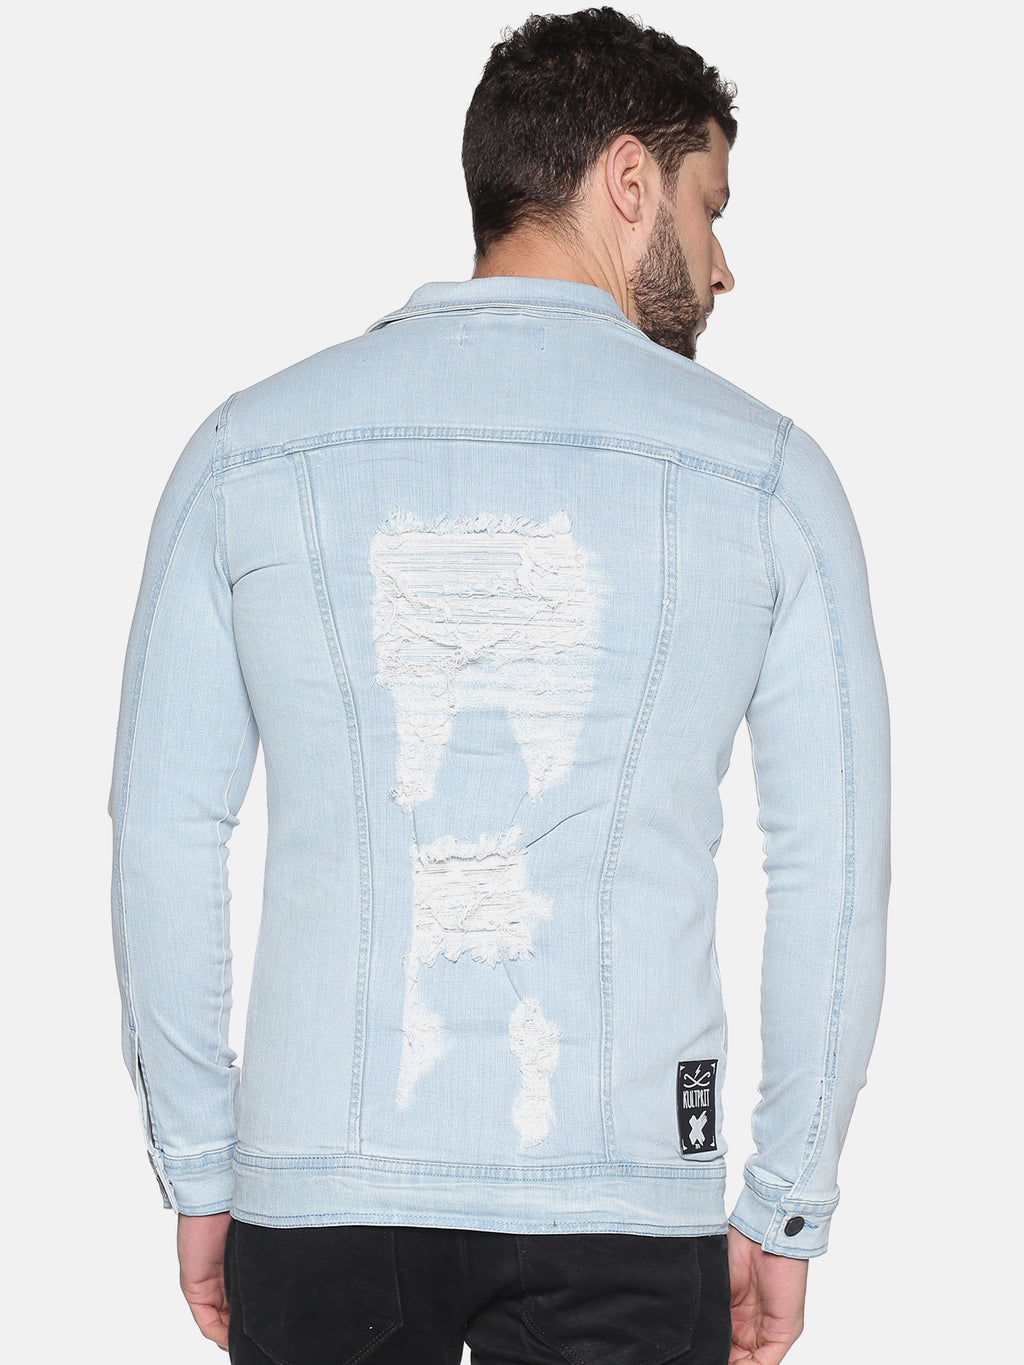 Kultprit Men's Full Sleeves Denim Jackets With Heavy Distressed